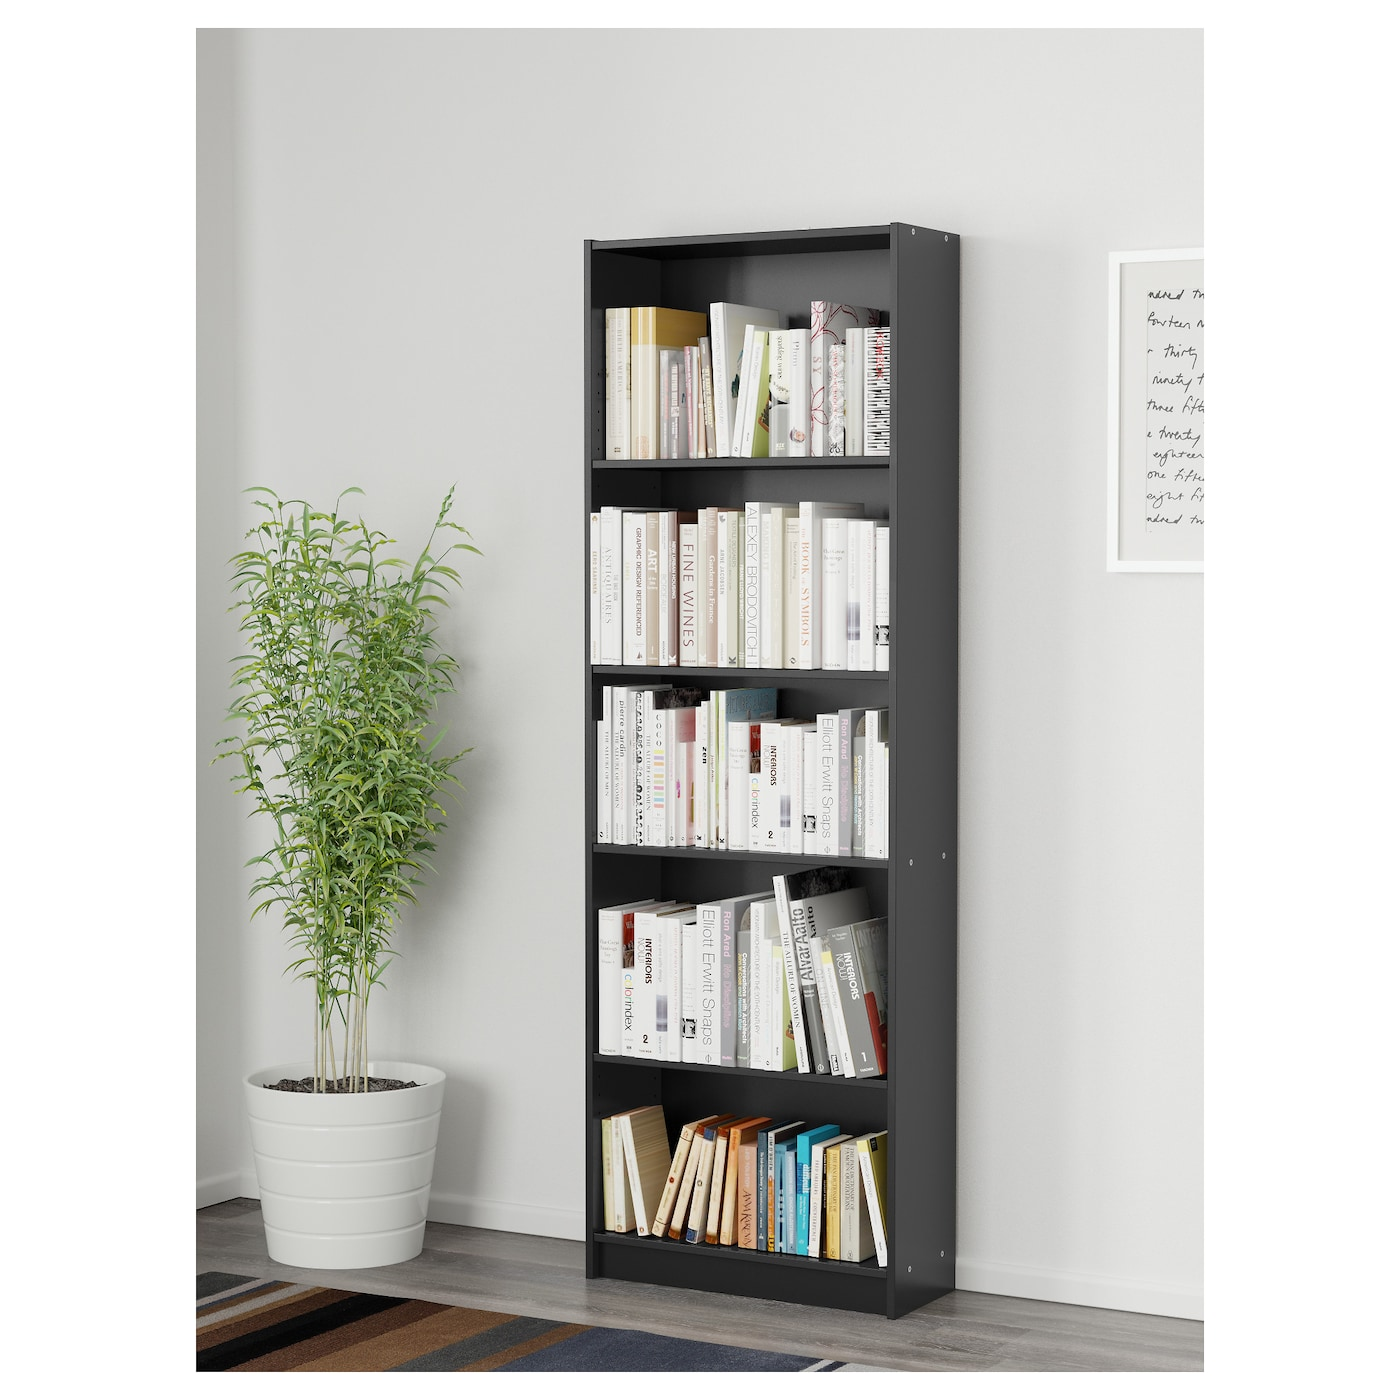 finnby bookcase black x cm  ikea - ikea finnby bookcase the shelves are adjustable so you can customise yourstorage as needed